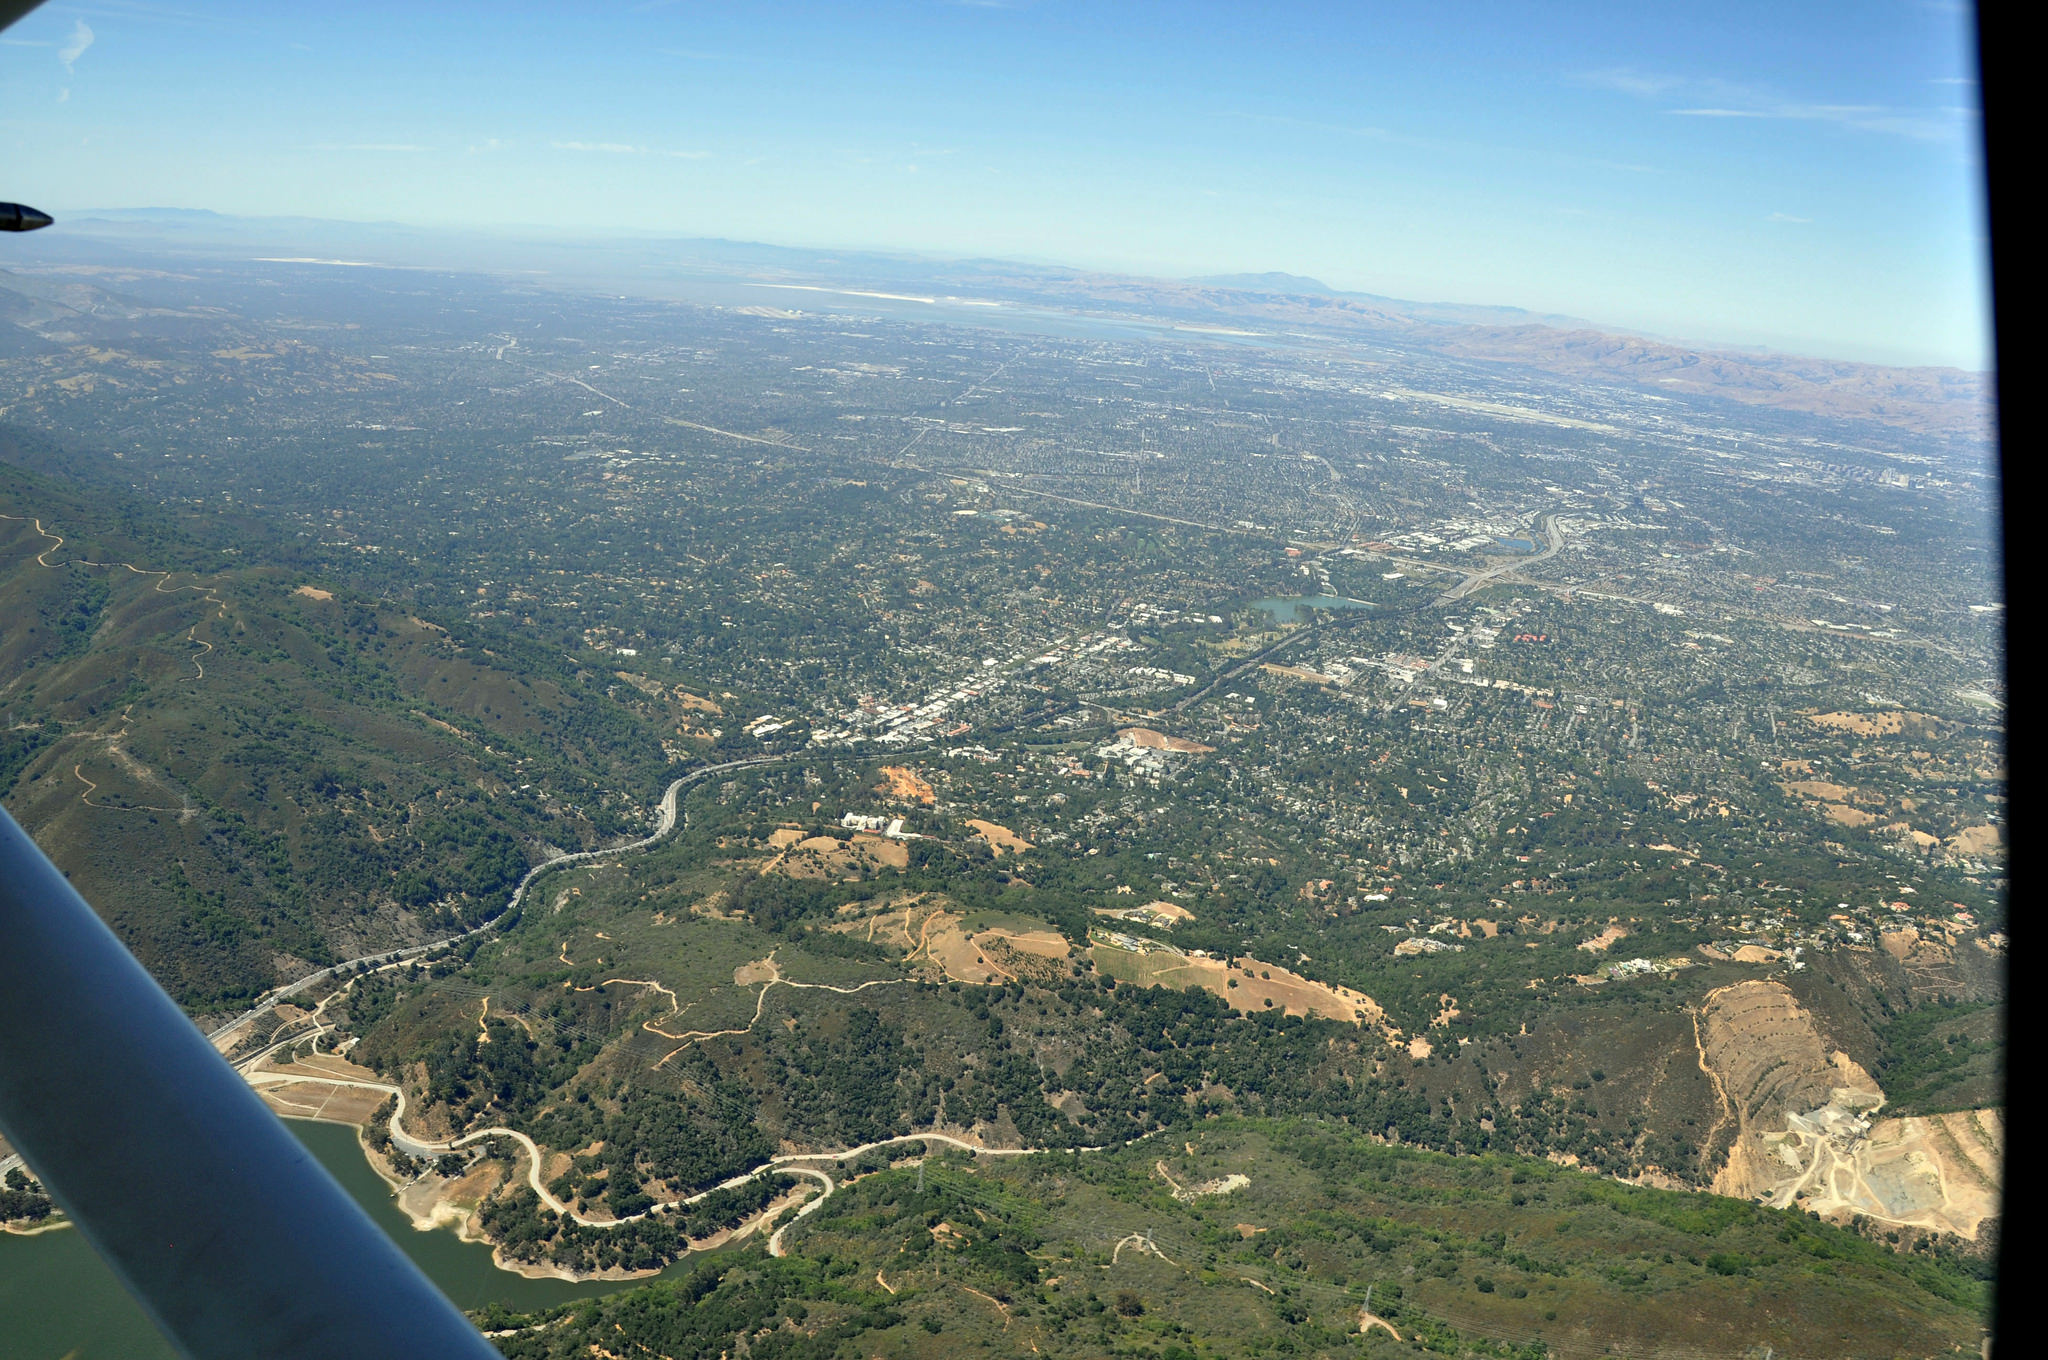 Los Gatos and beyond from the air